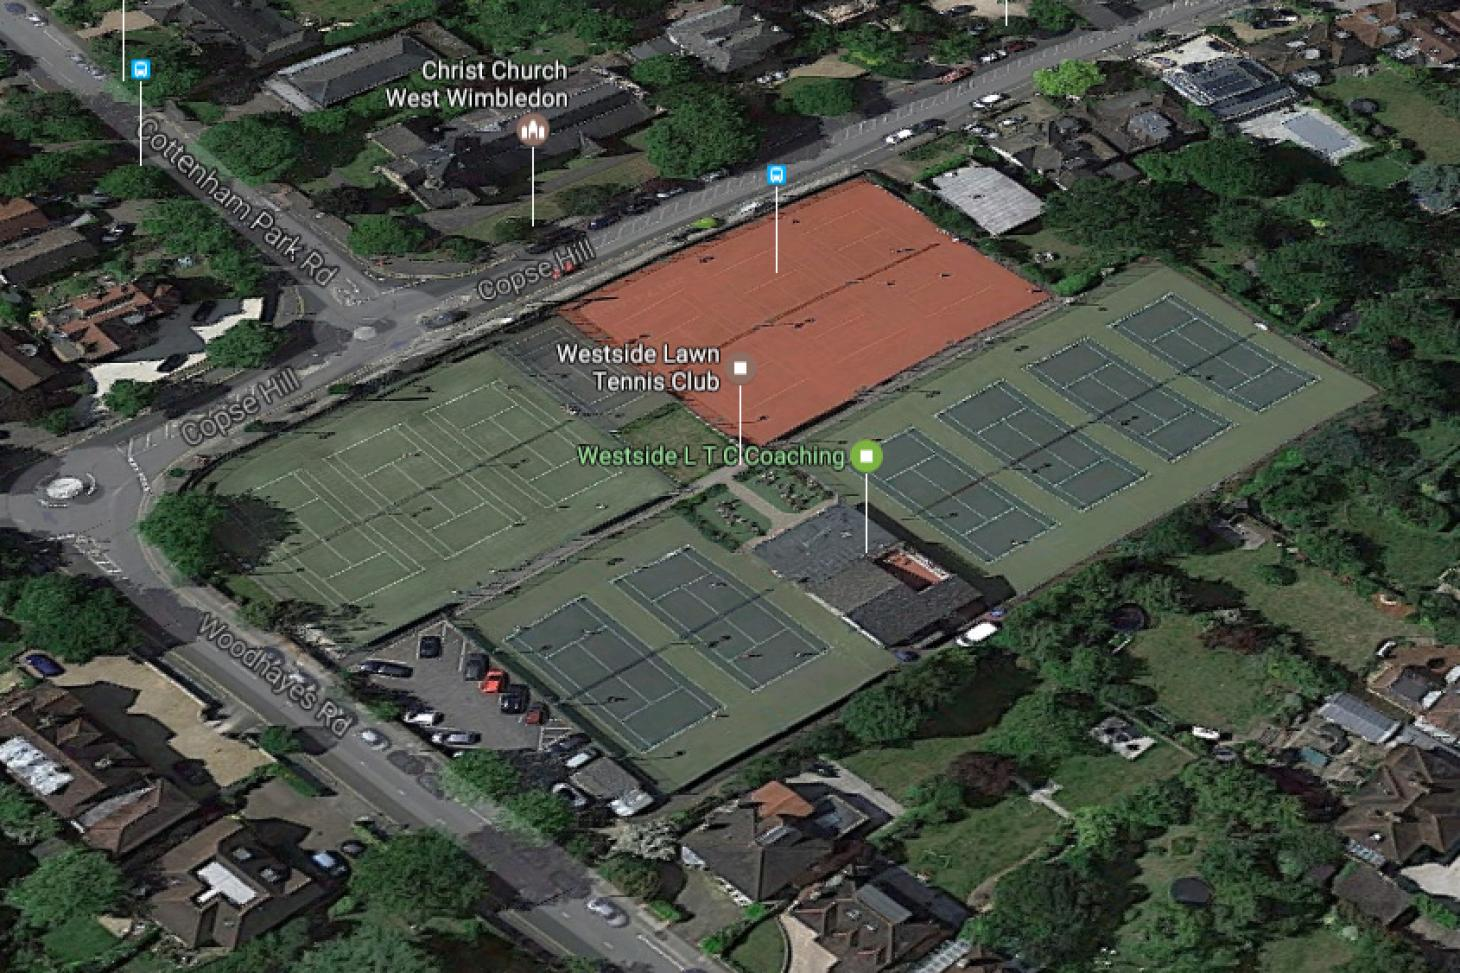 Westside Lawn Tennis Club Outdoor | Hard (macadam) tennis court